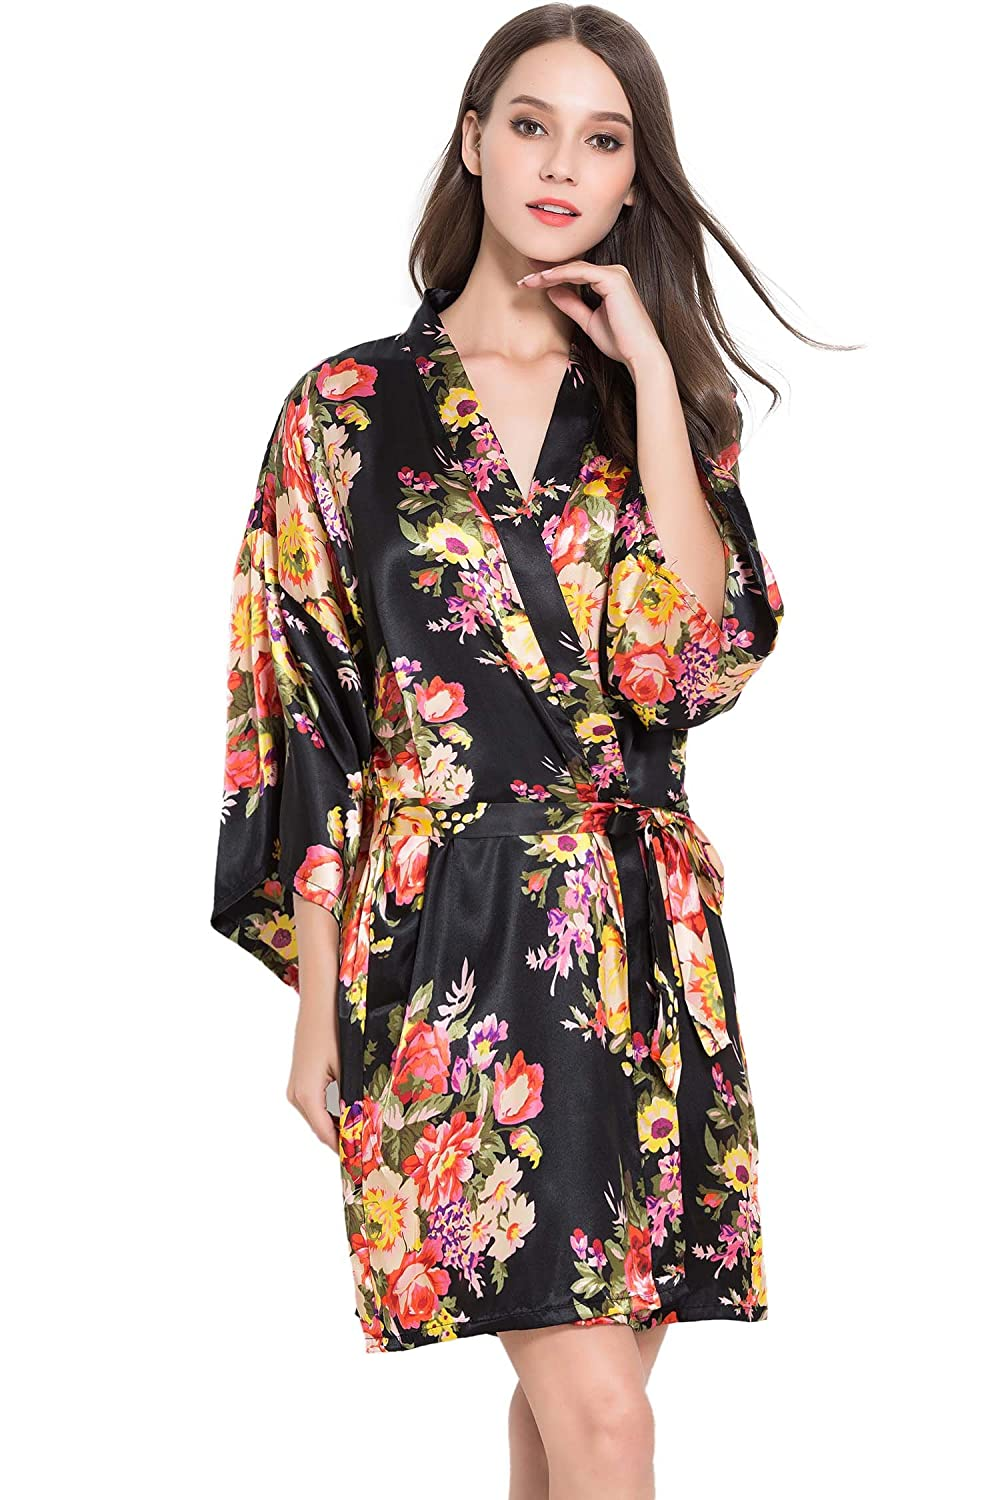 e108119450 FLORAL Black Satin Robe